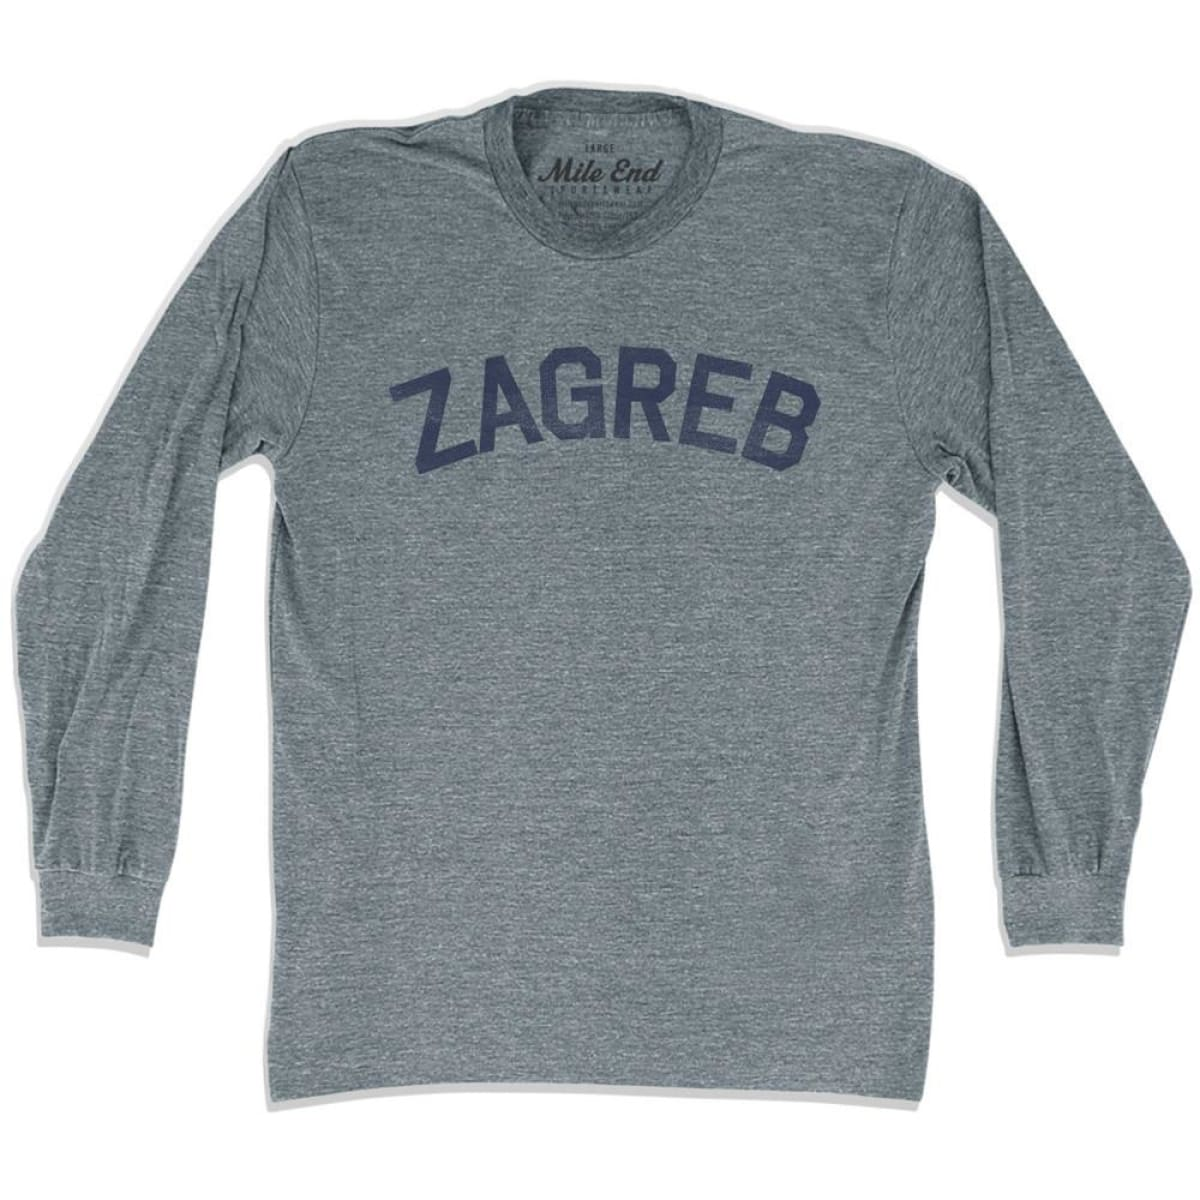 Zagreb City Vintage Long Sleeve T-shirt - Athletic Grey / Adult X-Small - Mile End City